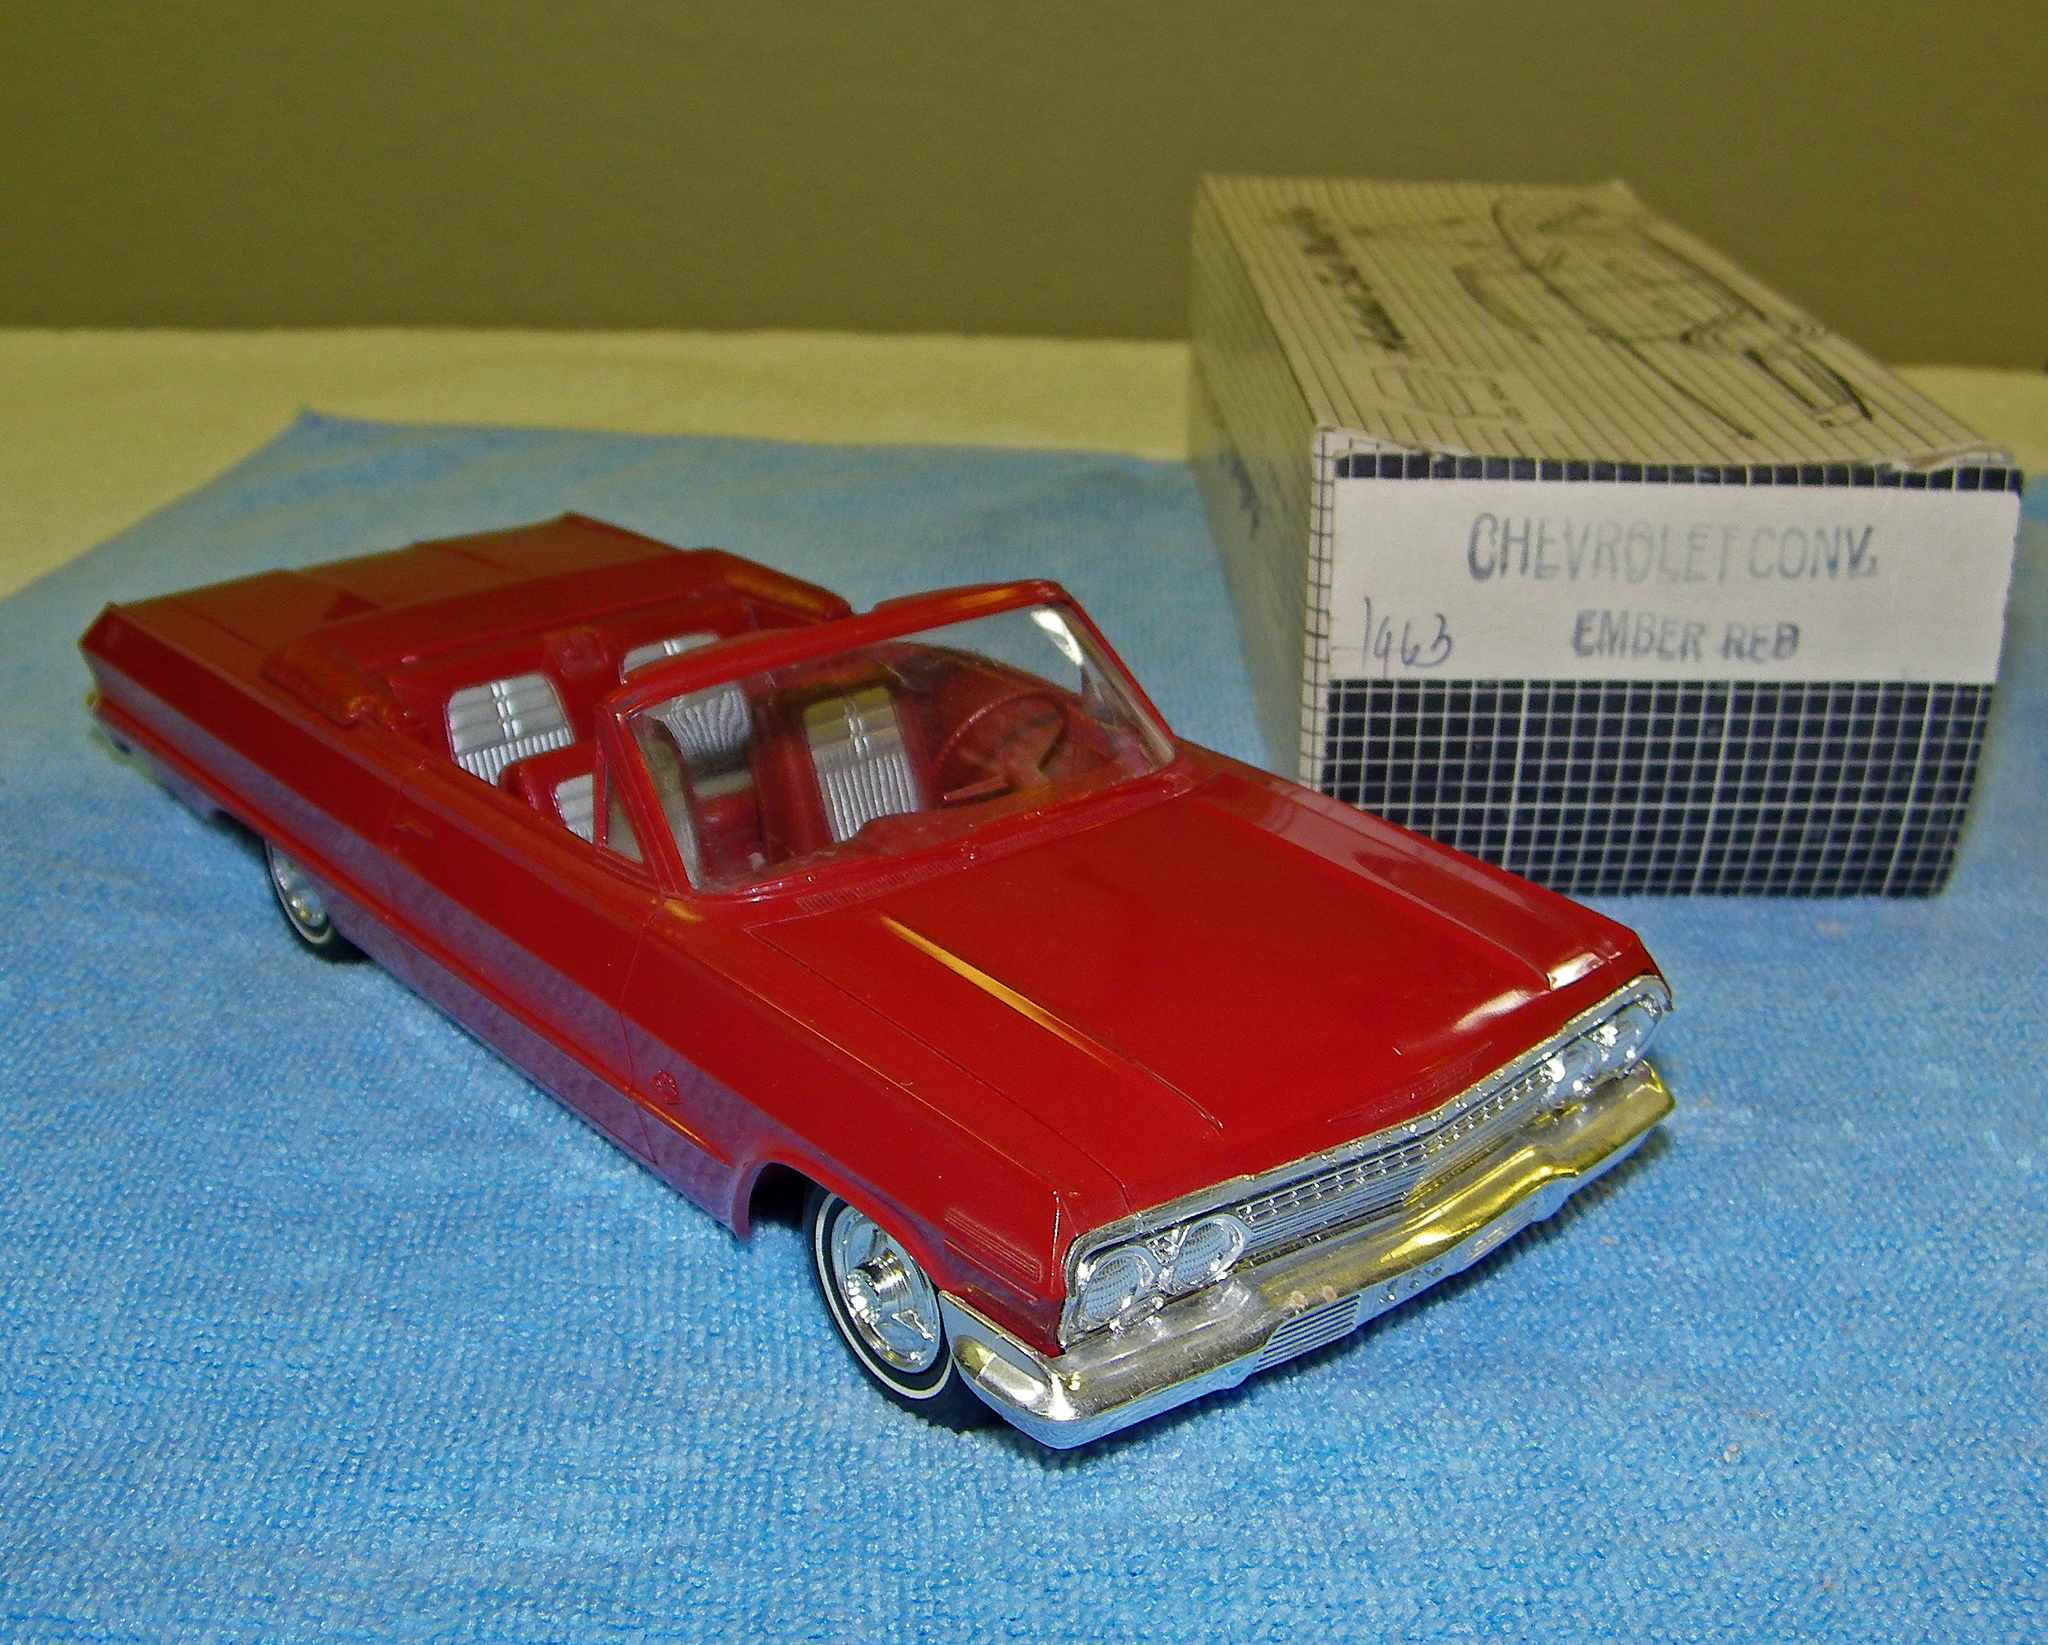 1963 chevrolet impala ss 409 convertible promo model car. Black Bedroom Furniture Sets. Home Design Ideas